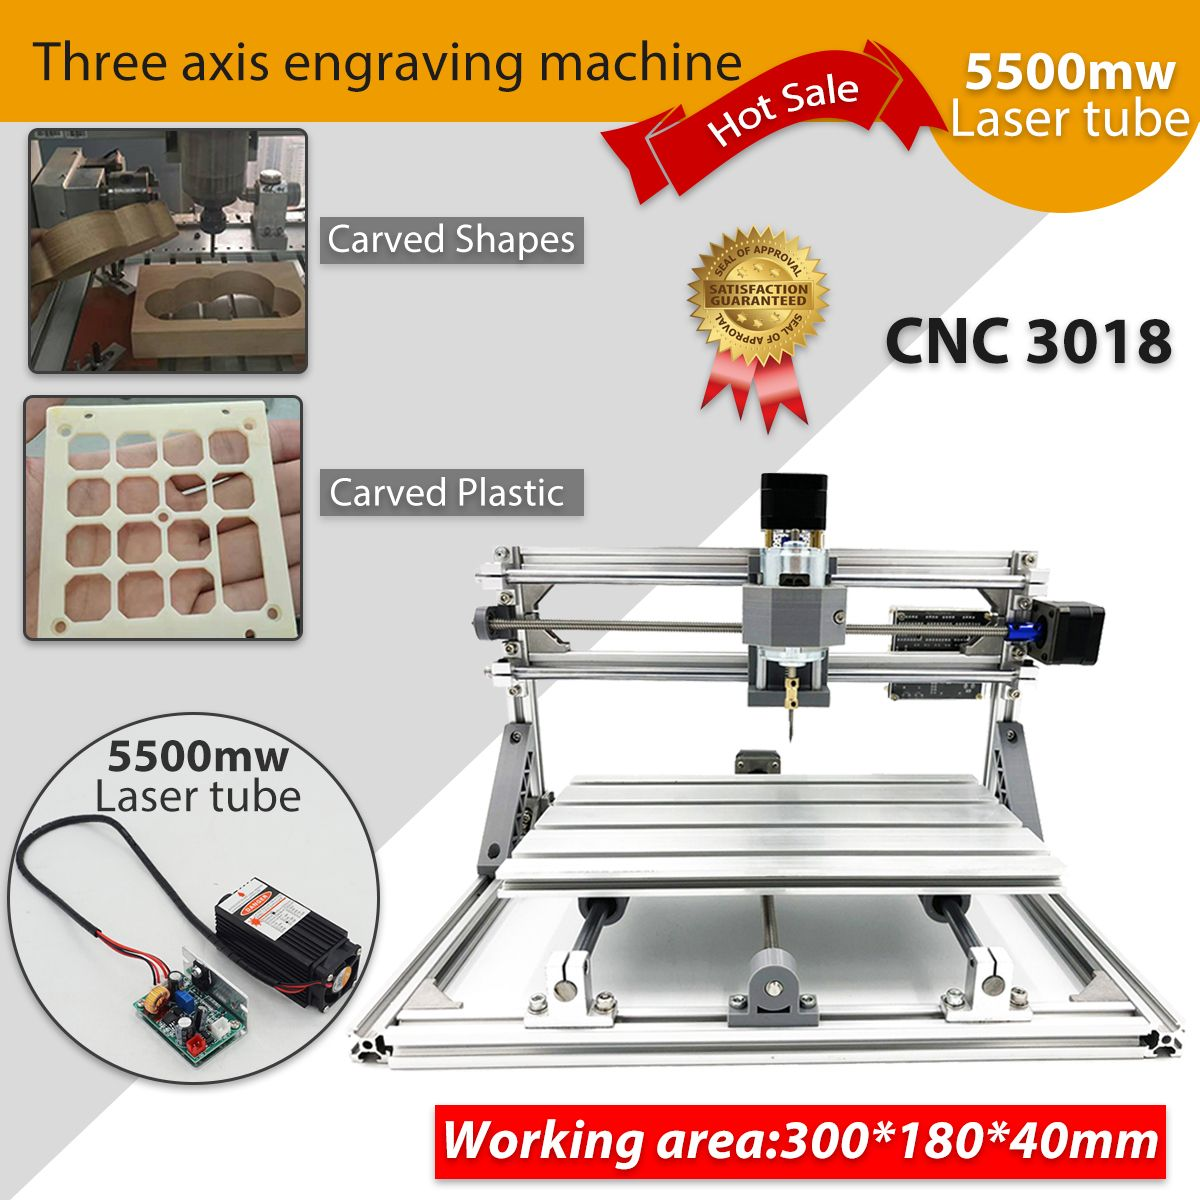 CNC 3018 5500mw/2500mw Laser mini cnc engraving machine cnc milling machine cnc kit Wood Router